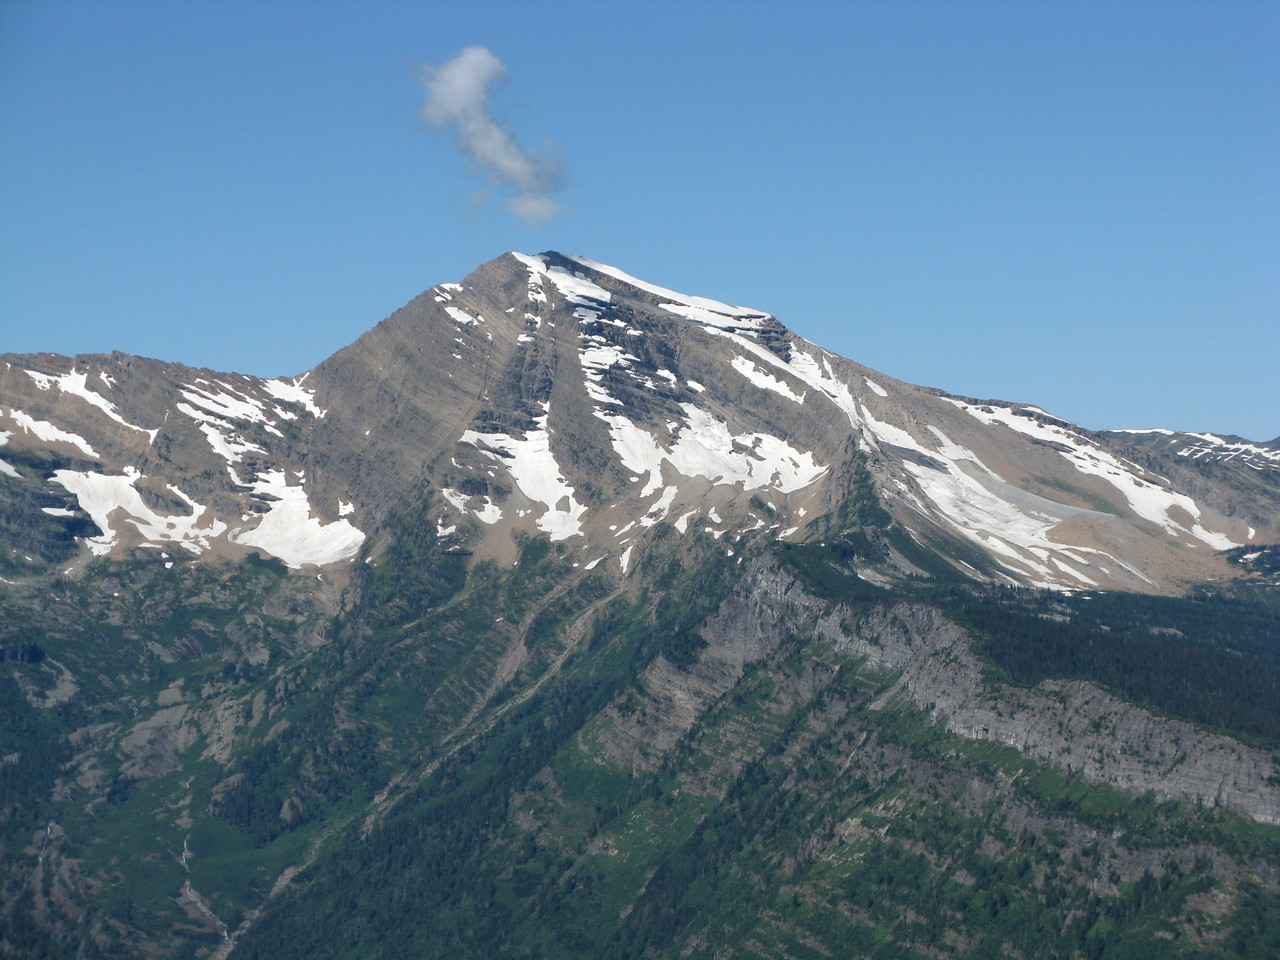 A closeup of Heavens Peak.  The white collection is a cloud, not a plume of steam.   The mountains in Glacier NP appeared to be sedimentary rock, which implies the rocks were once ocean floors that were lifted up by tremendous geological forces.